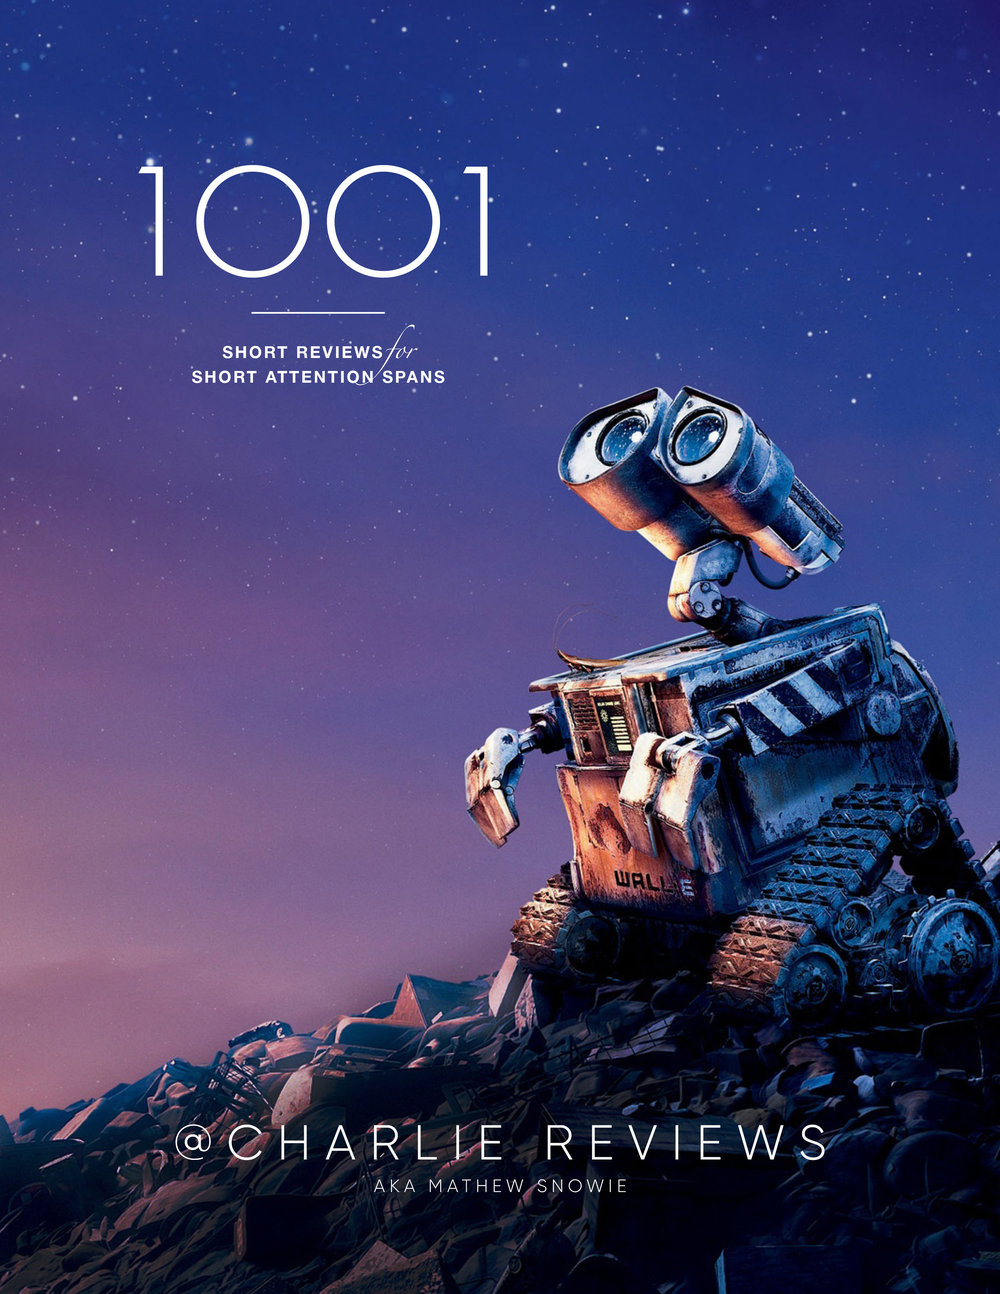 1001 Reviews - After 8 years of writing film reviews on Twitter I passed the milestone of 1001 entries. To celebrate I have collected them into an illustrated book, which can be downloaded as a PDF by clicking the image.